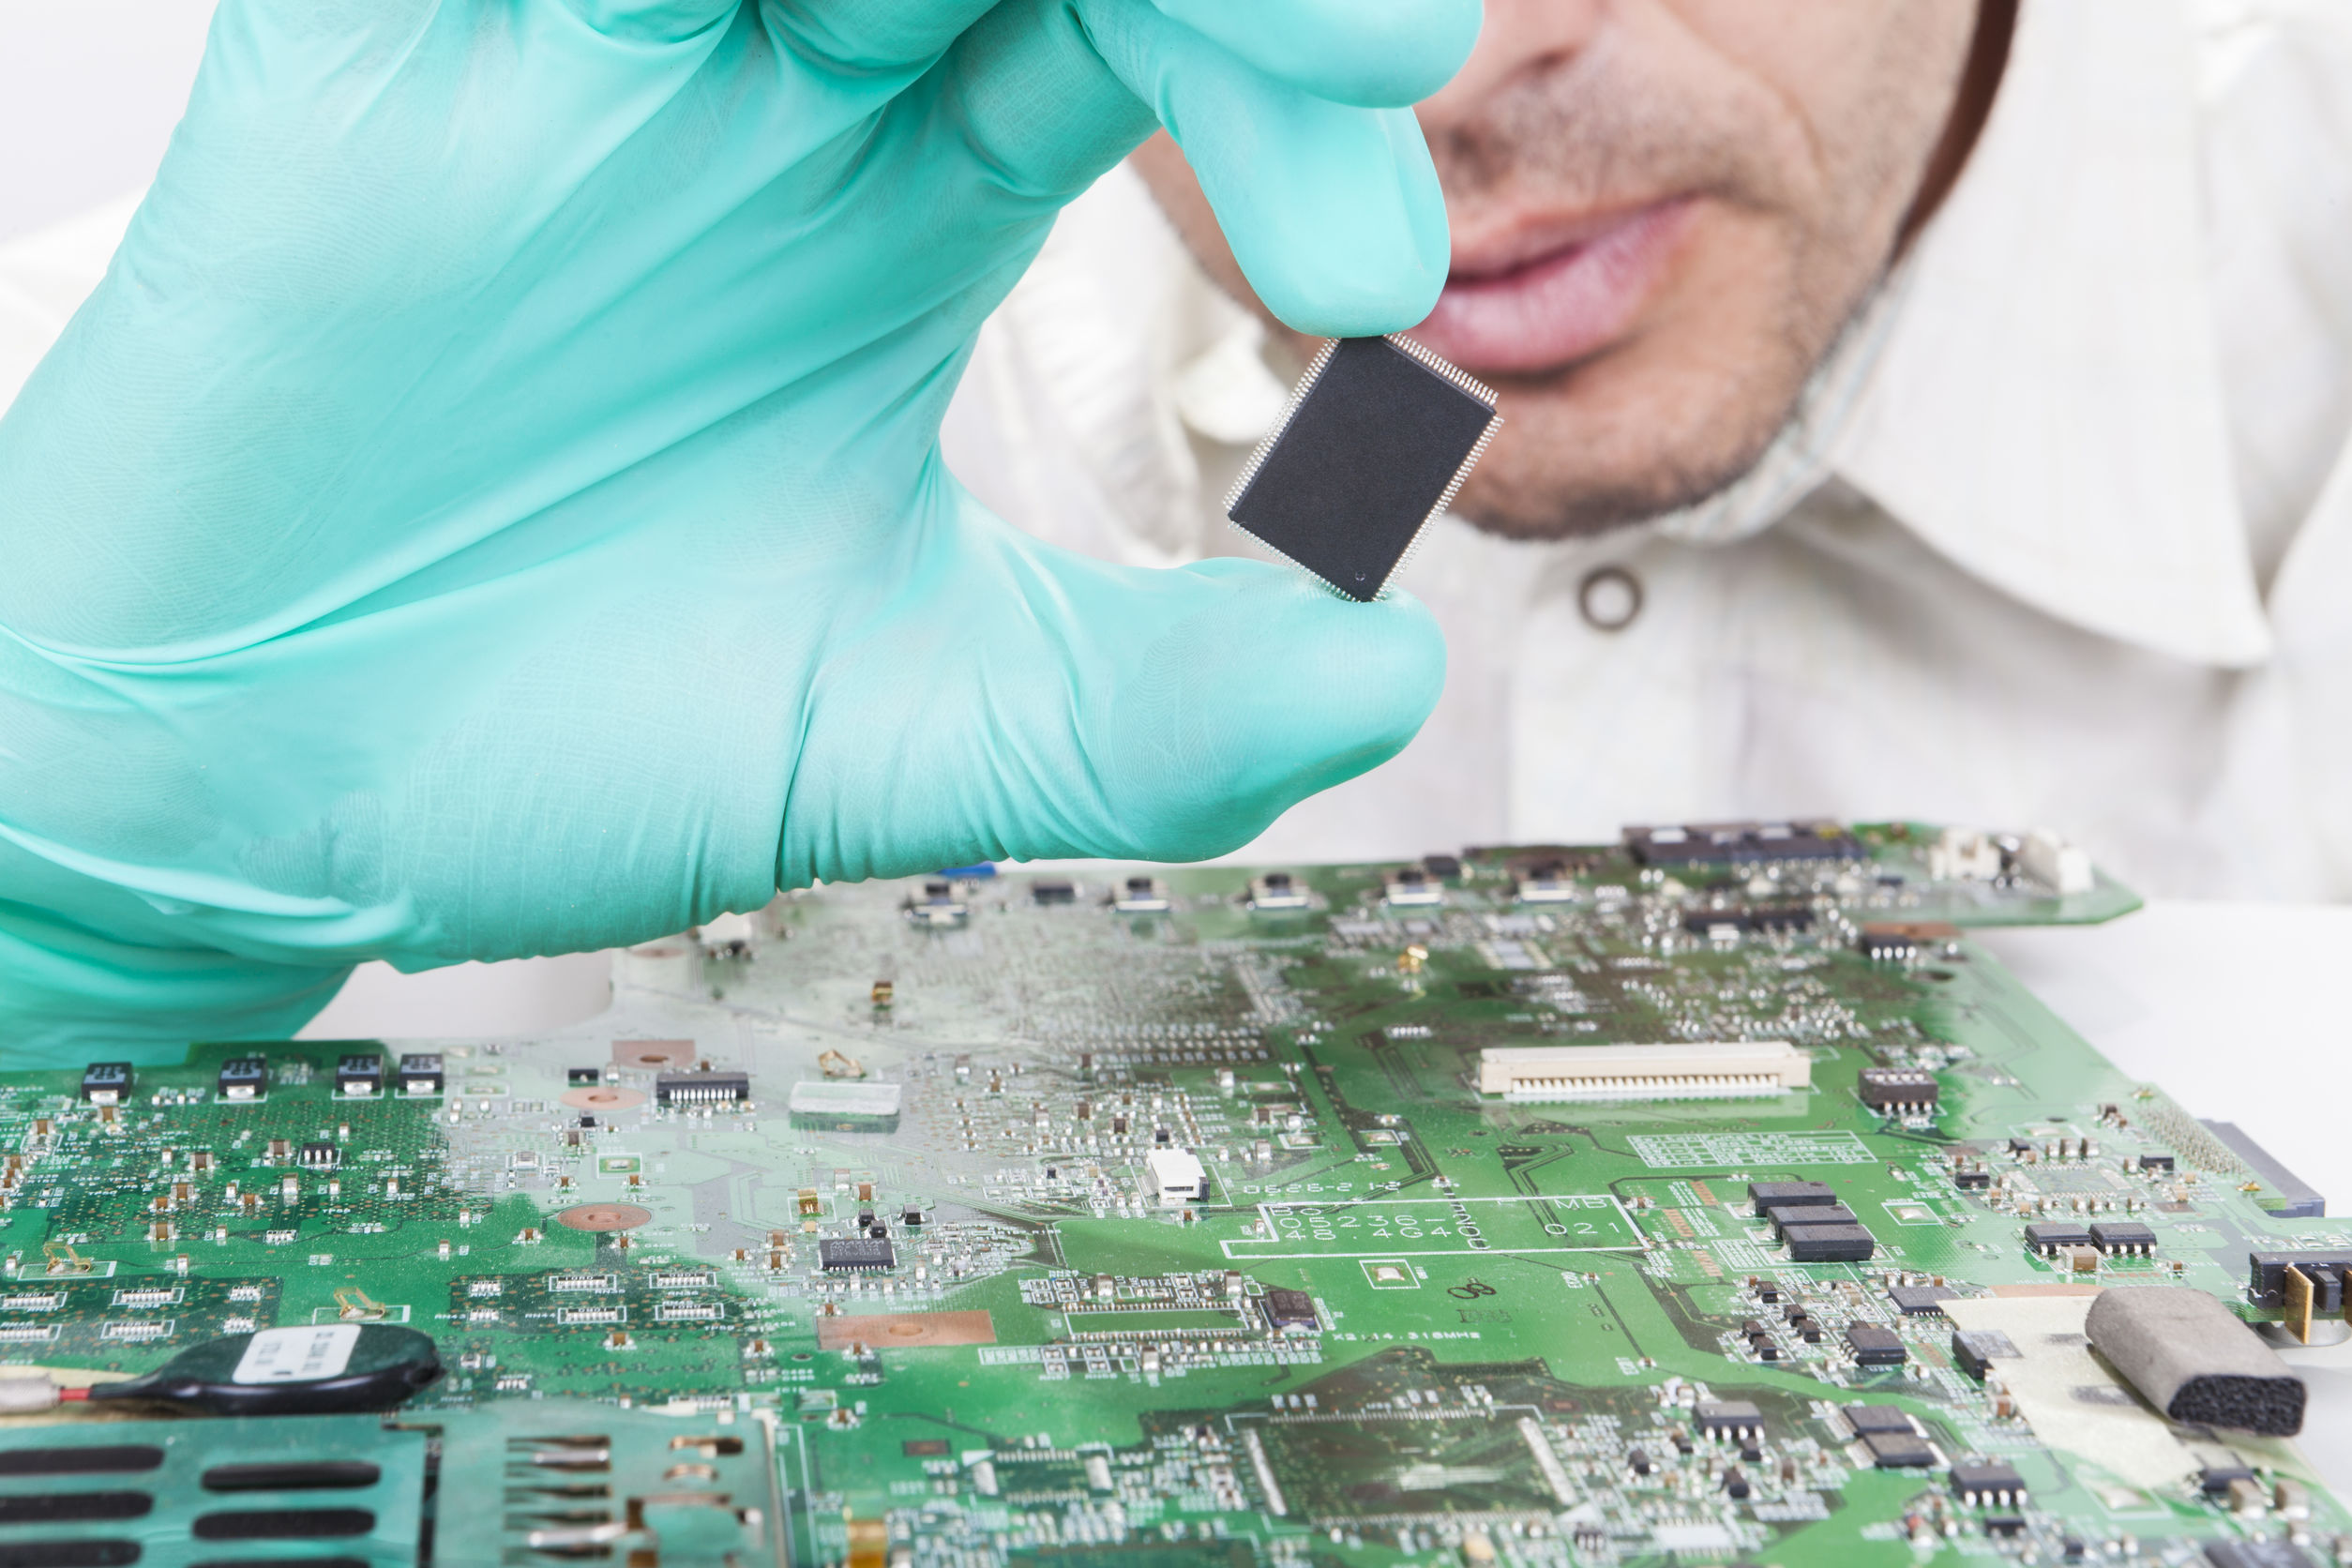 Holding Microchip on electronic circuit board with Gloves